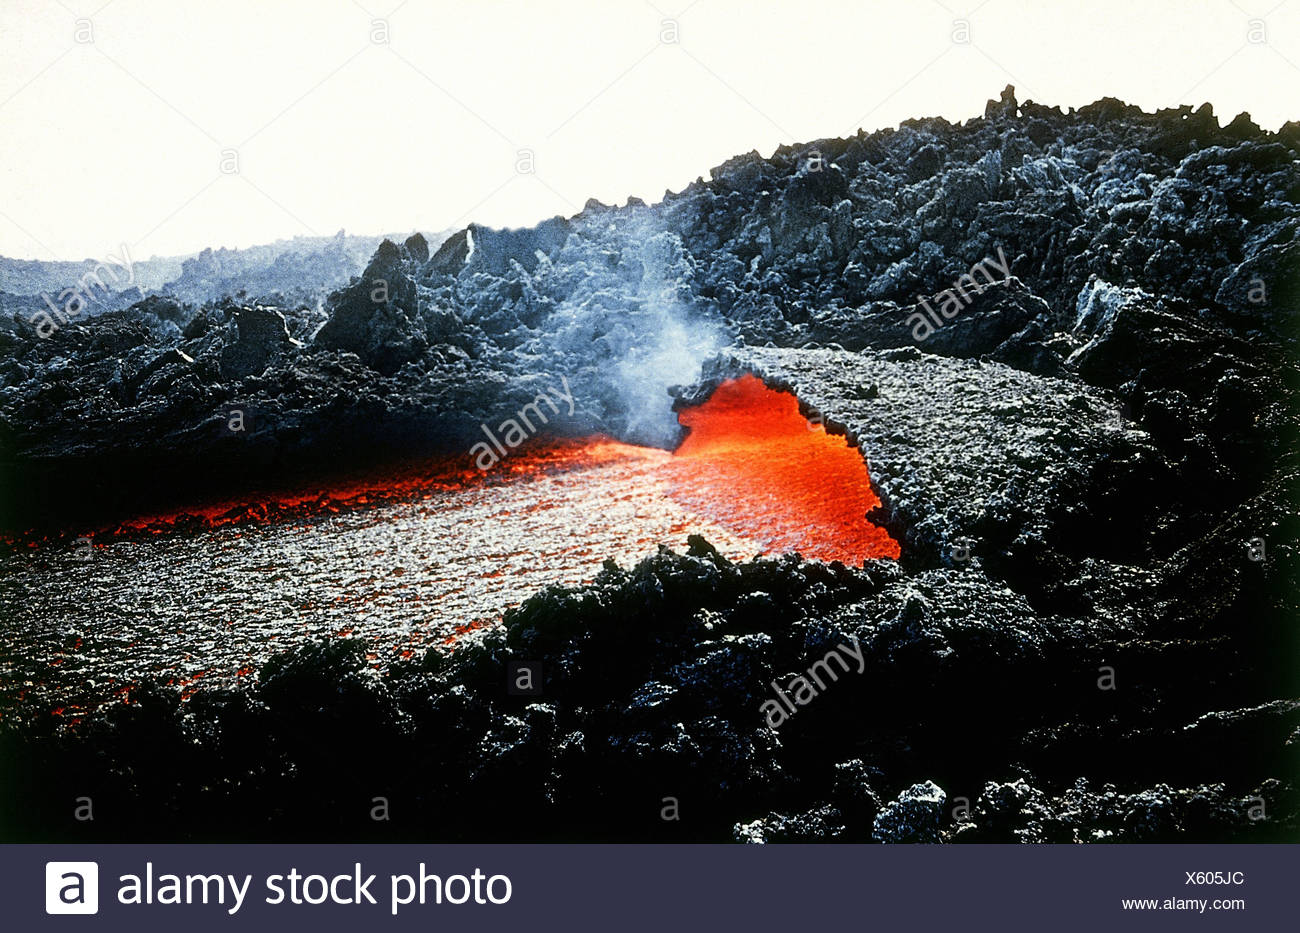 geography / travel, Italy, Sicily, volcanos, eruption of Mount Etna, Europe, geology, formation, force of nature, landscape, landscapes, volcano, volcanos, volcanoes, volcanism, volcanic activity, volcanic eruption, volcanic outburst, volcanic eruptions, volcanic outbursts, lava stream, lava river, lava flow, volcanic flow, lava streams, lava rivers, lava flows, volcanic flows, historic, historical, 20th century, Additional-Rights-Clearances-NA Stock Photo